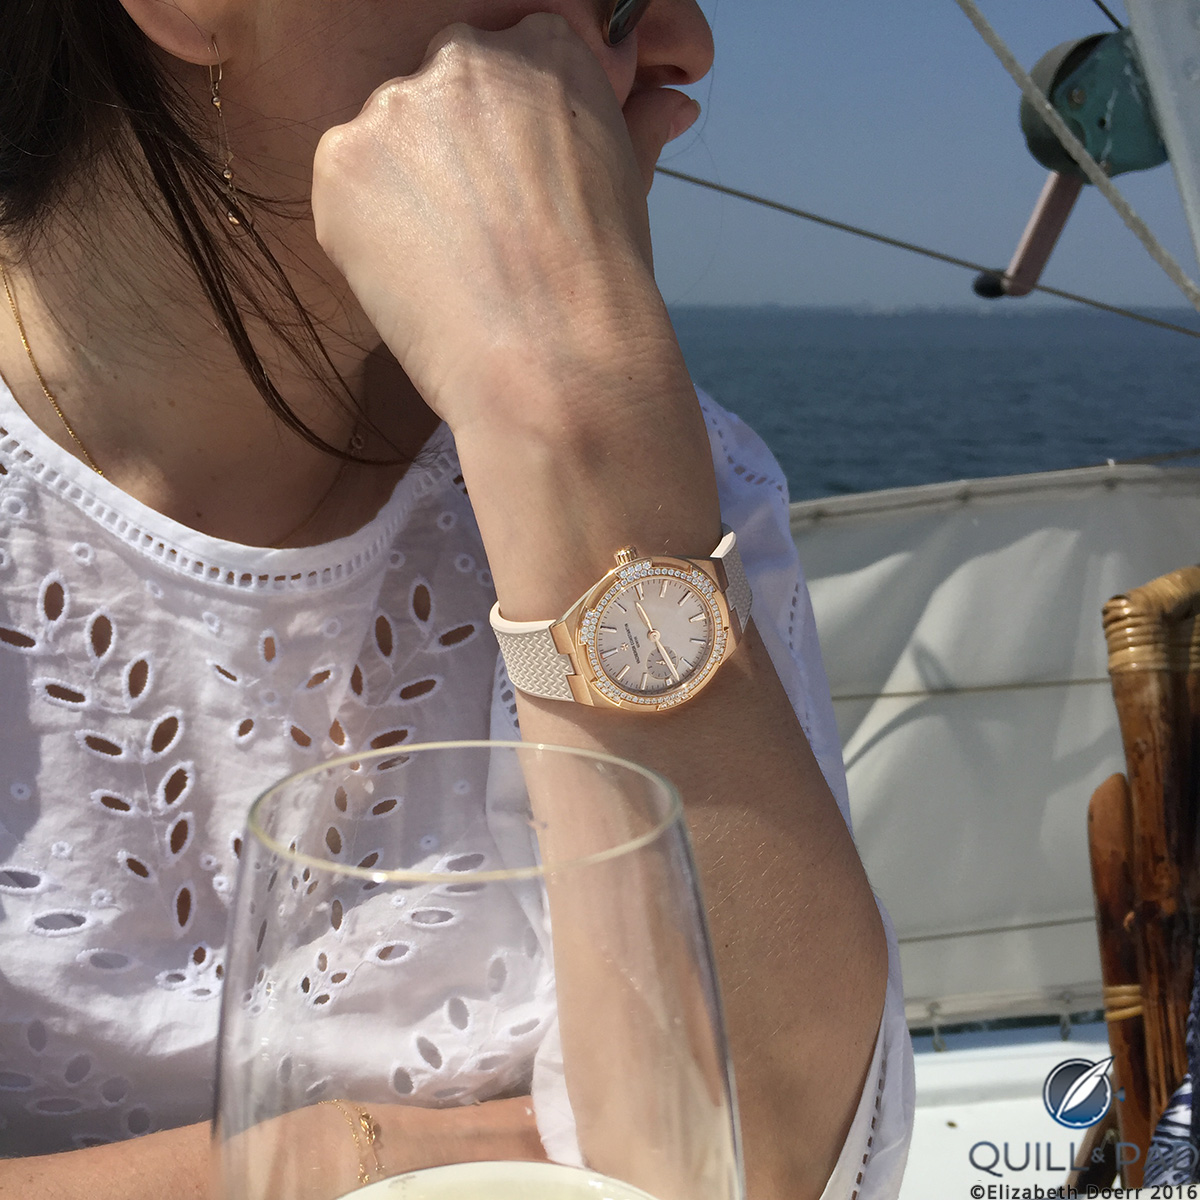 The Vacheron Constantin Overseas small model is perfect for the female wrist